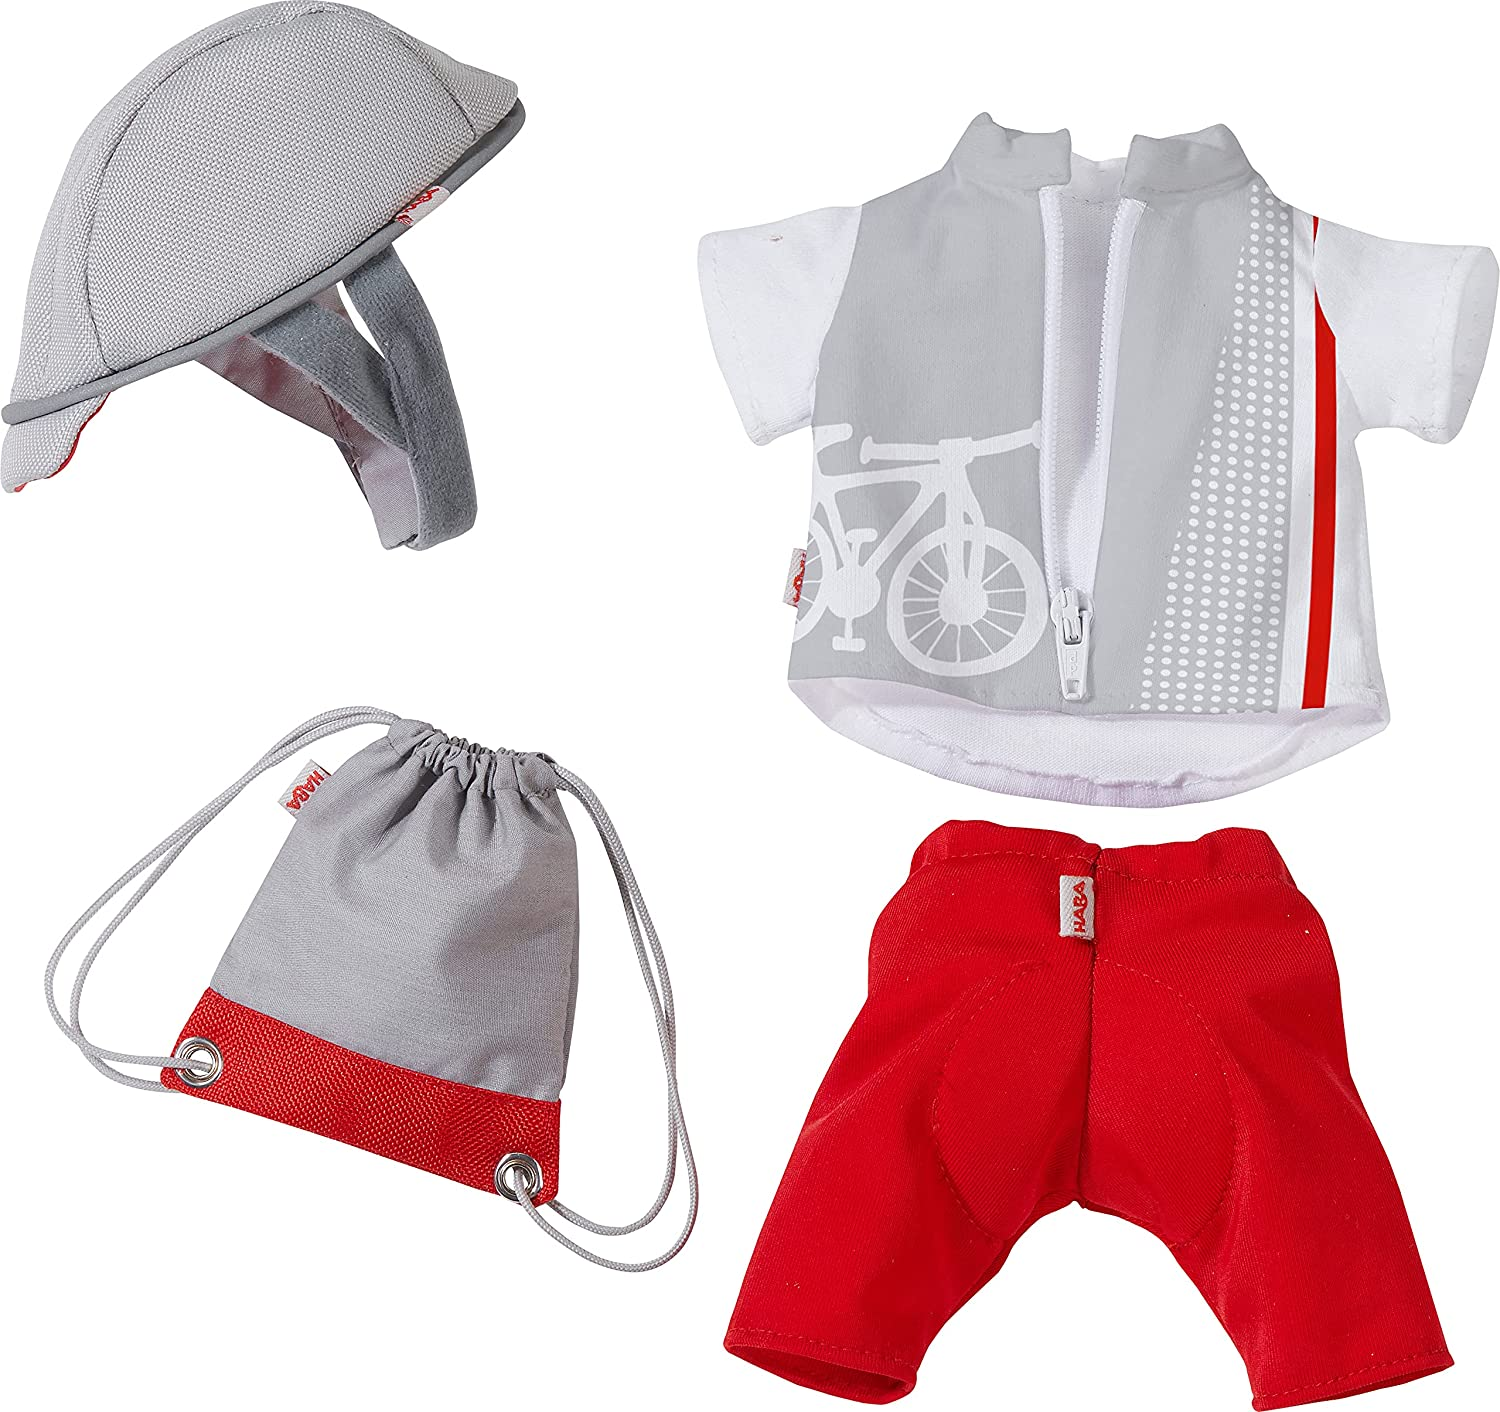 HABA Bike Time Outfit Soft Dolls 12